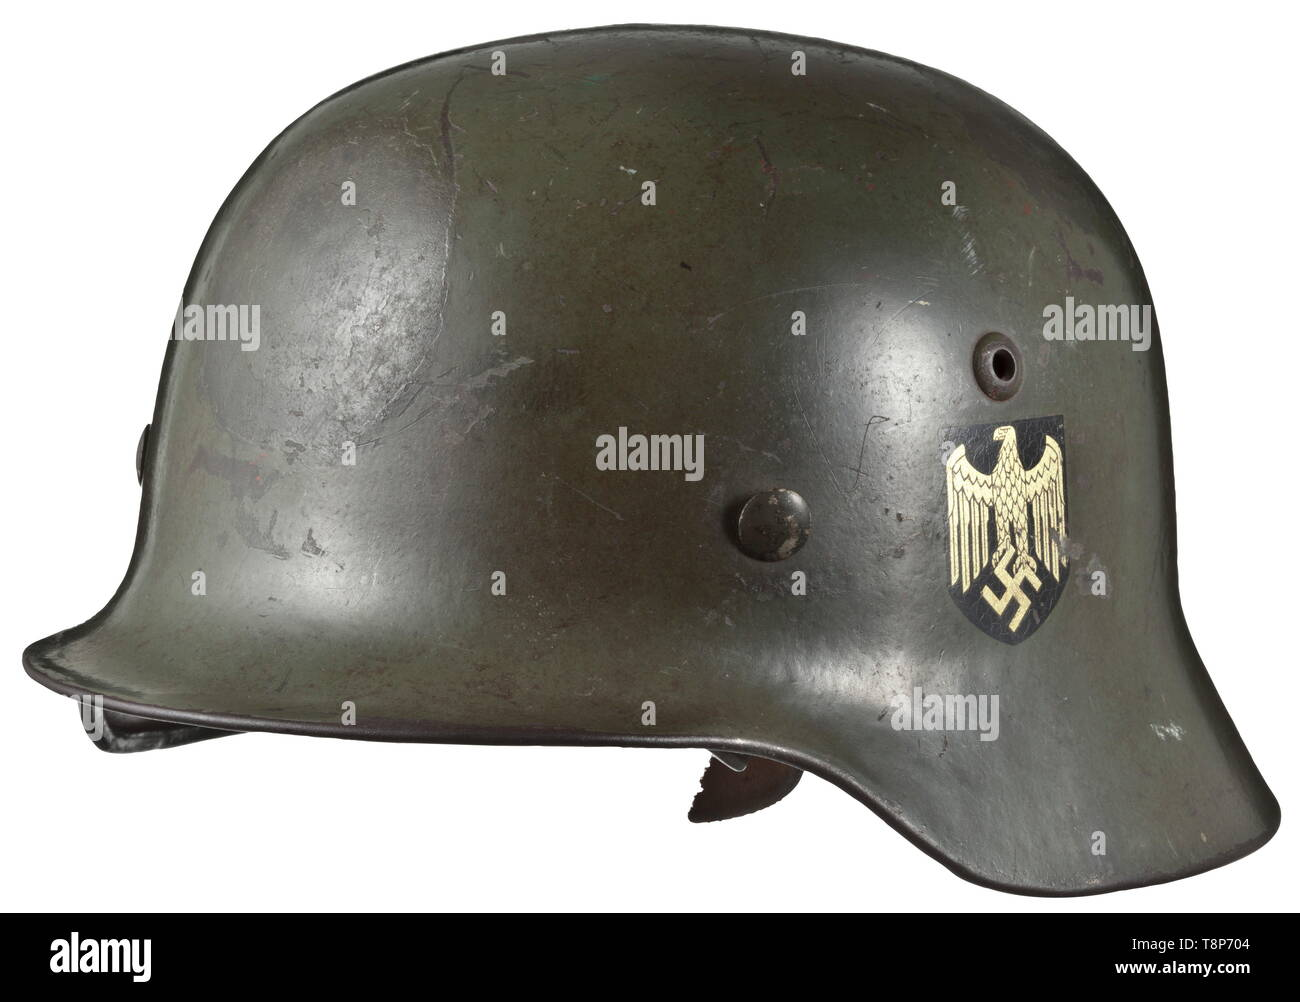 A steel helmet M 35 with both decals Steel shell with 'apple-green' basic lacquer, however over-painted to suit front requirements. Both decals almost fully preserved. Shell stamped 'SE 64' and '526' as well as wearer's name 'Uffz. Eisgruber'. Complete with inner lining and chin strap (stamped but torn). Signs of age and usage. historic, historical, army, armies, armed forces, military, militaria, 20th century, Editorial-Use-Only - Stock Image